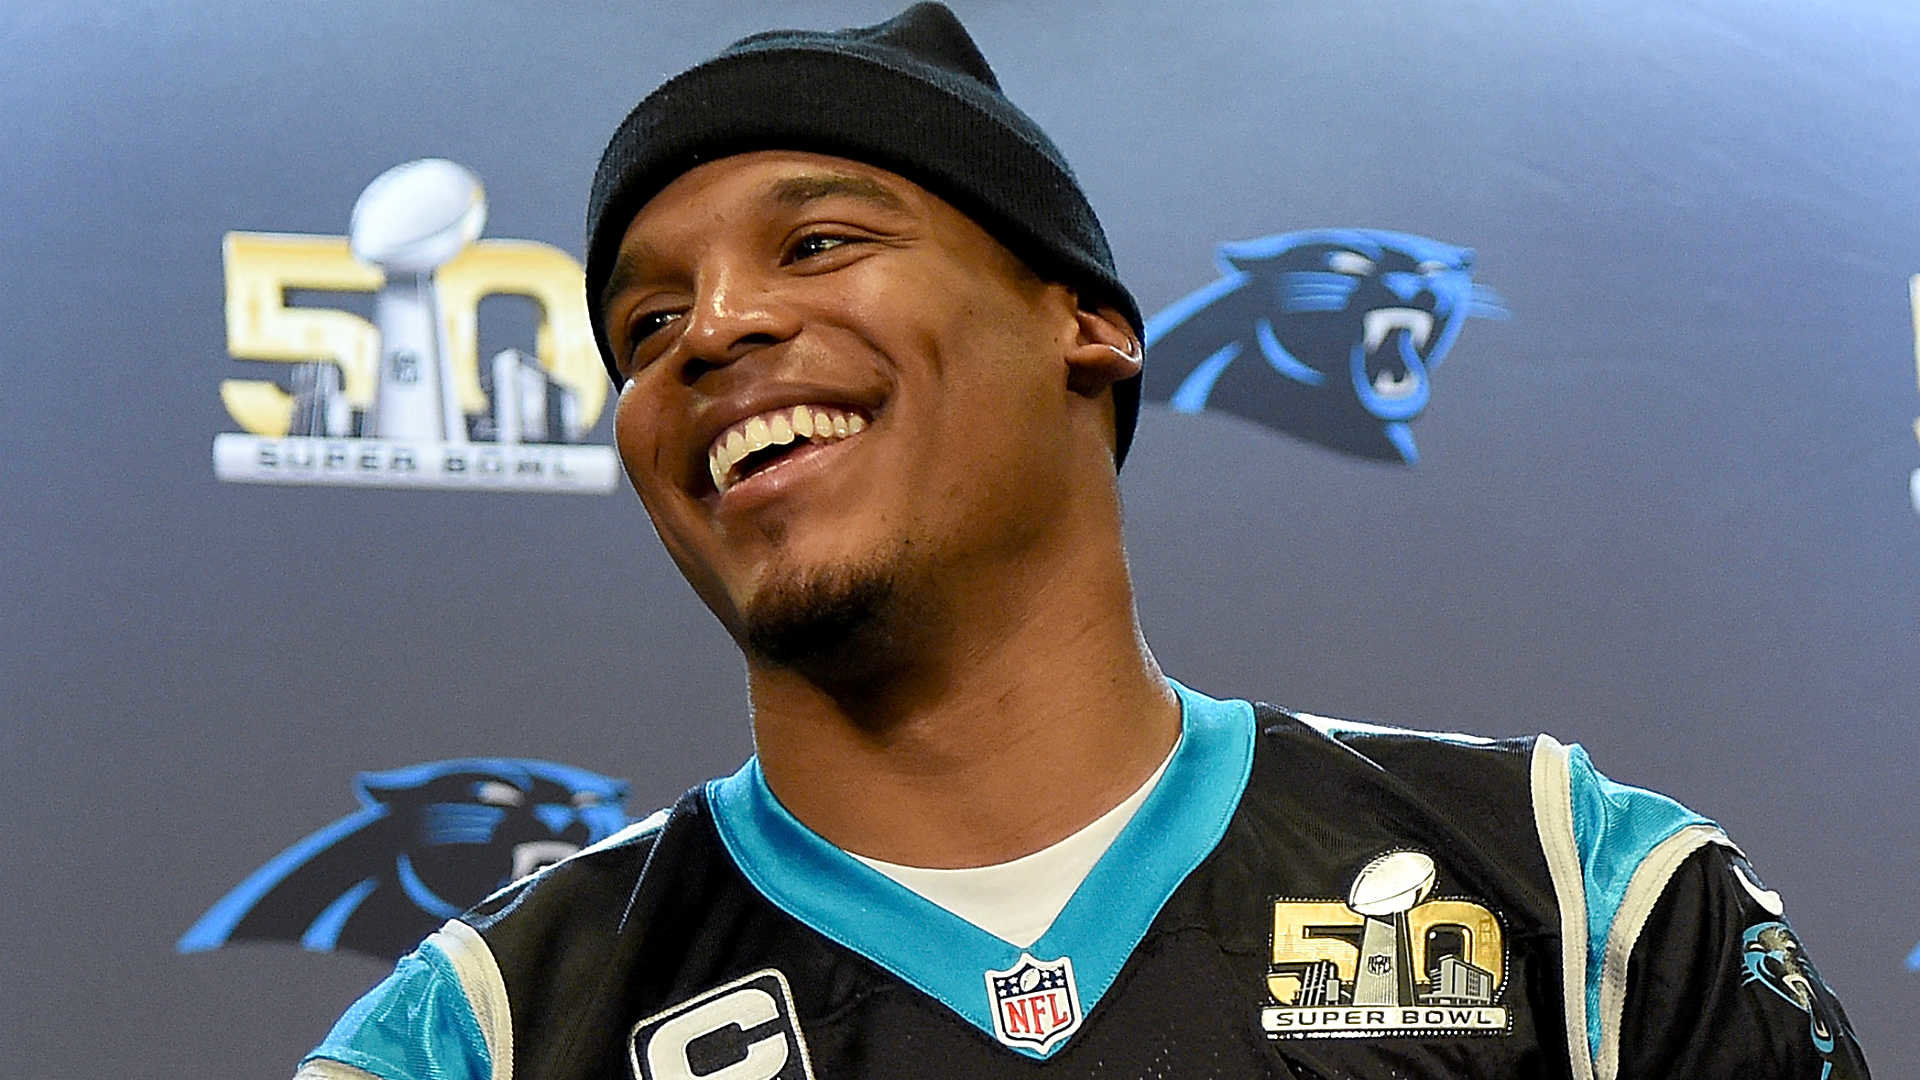 Awesome Cam Newton free wallpaper ID:57596 for full hd 1920x1080 computer